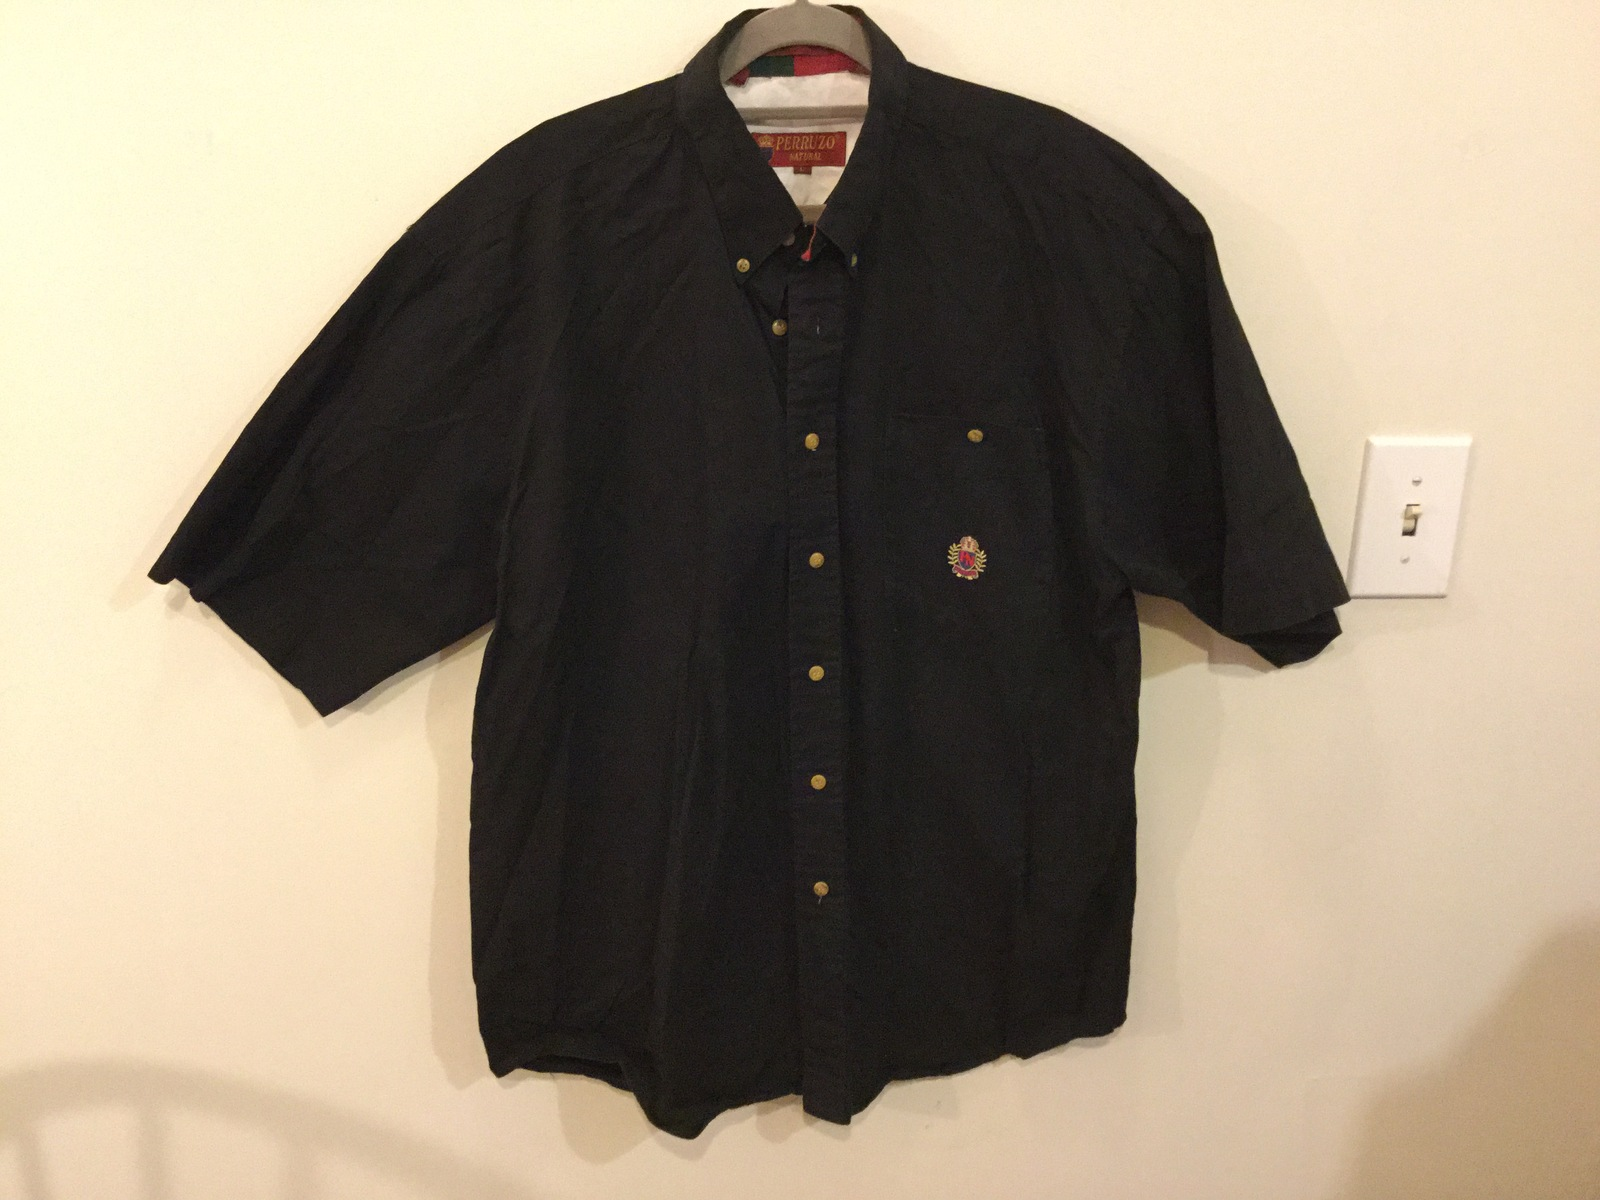 Perruzo Natural Mens Black 100% Cotton Button Up Short Sleeve, size L